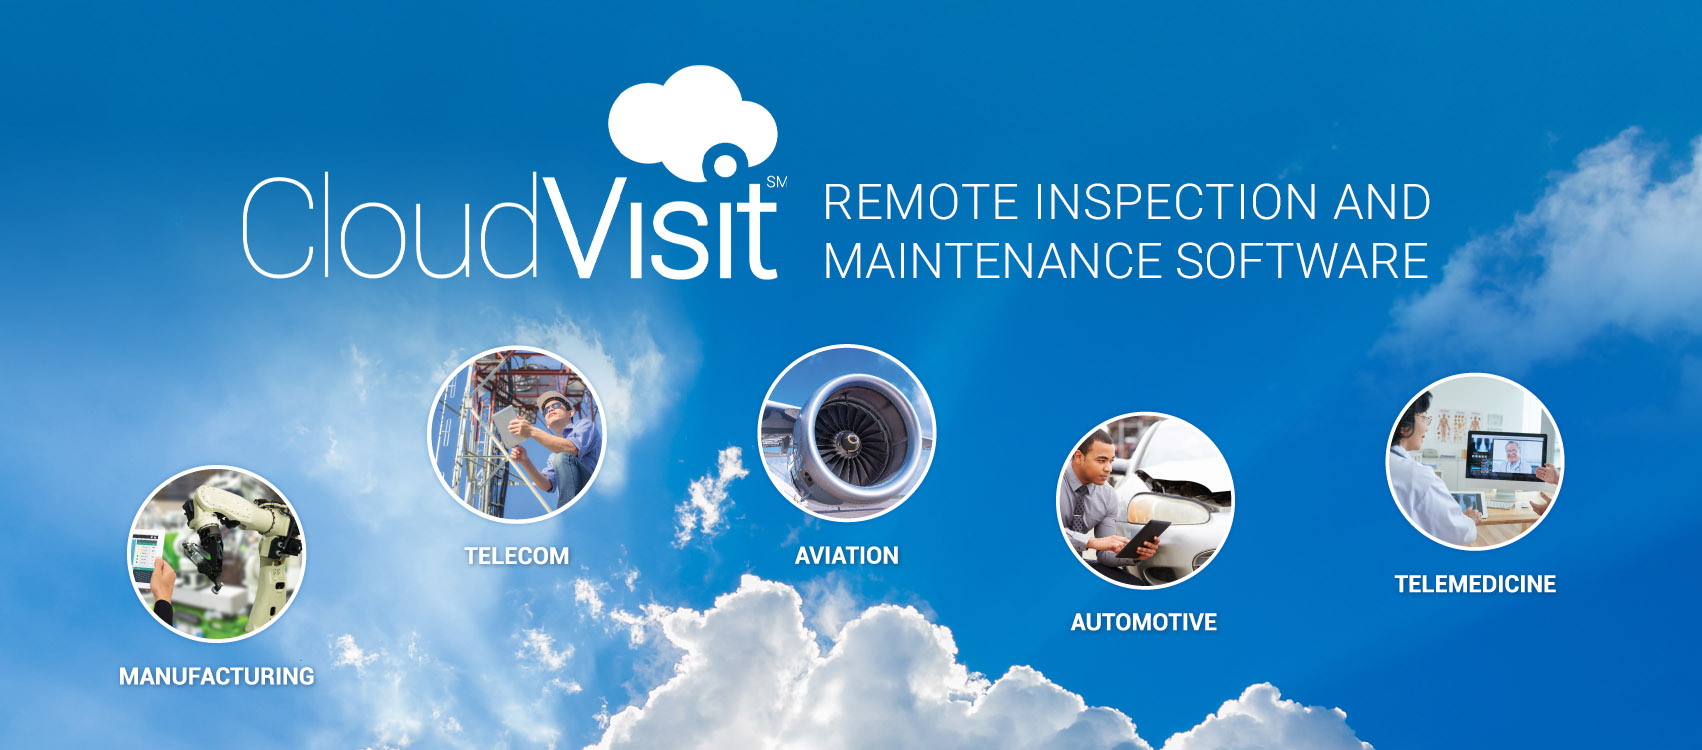 CloudVisit Remote Inspection and Maintenance Software